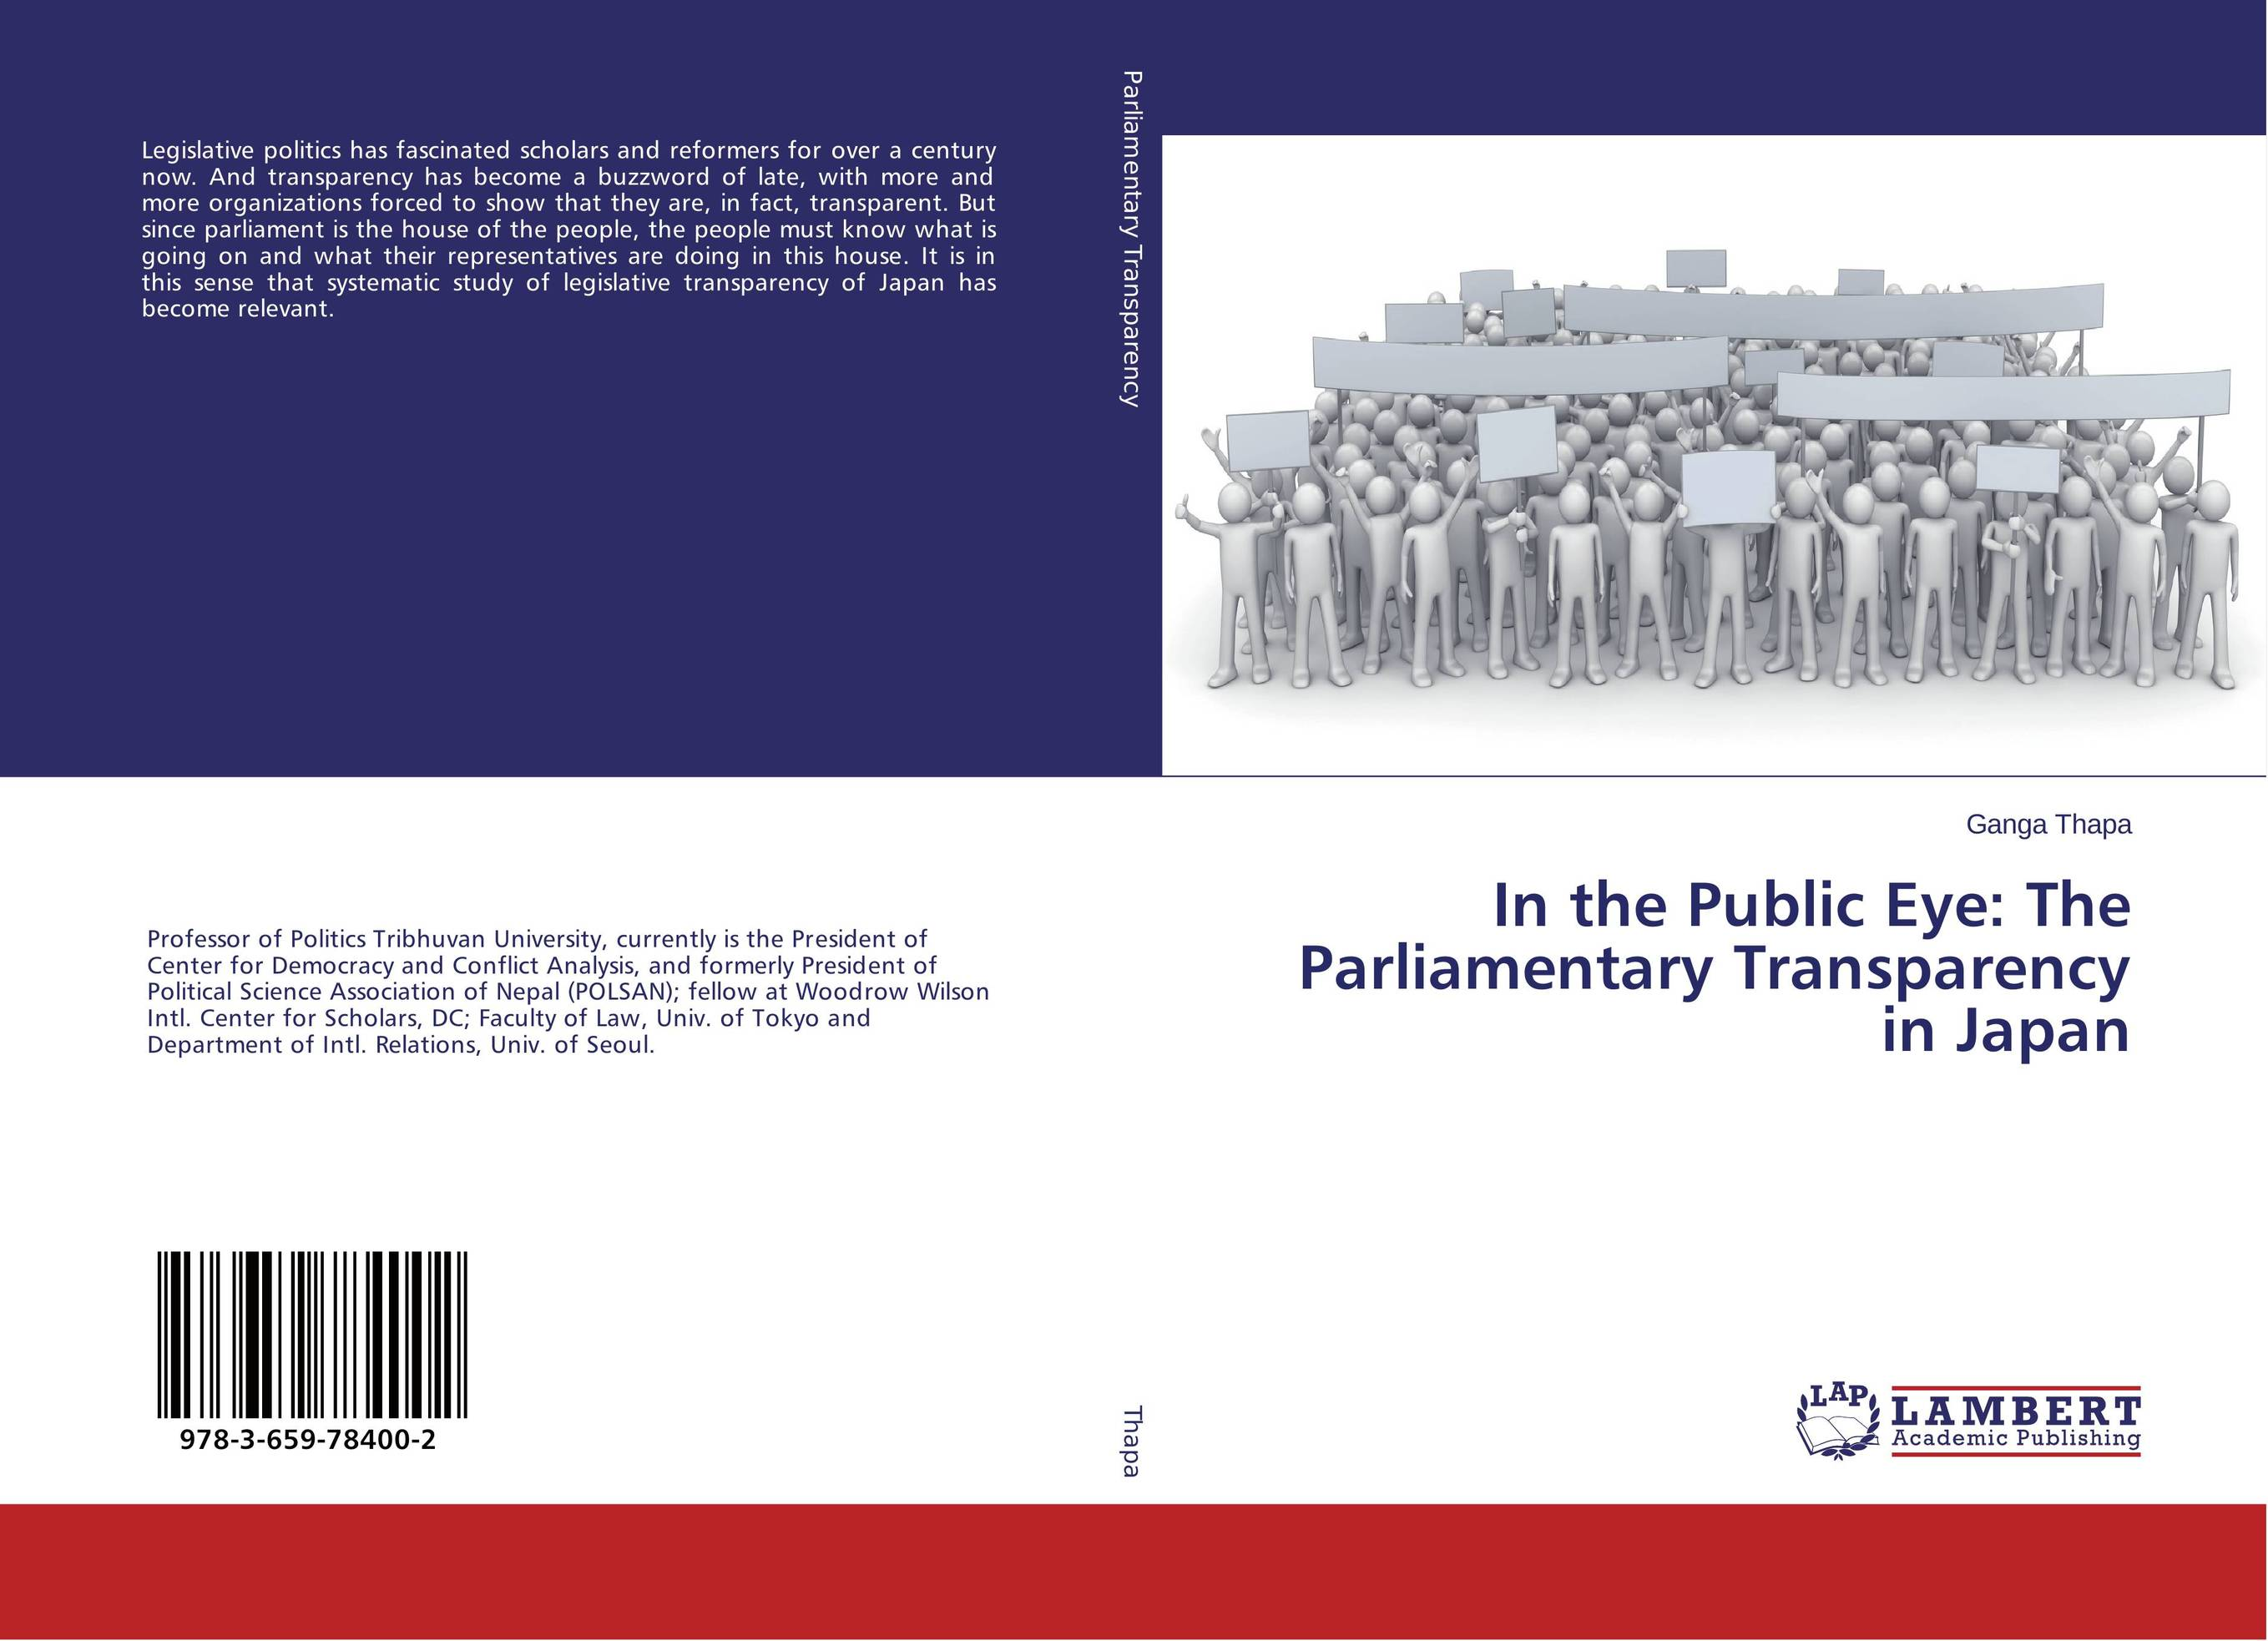 In the Public Eye: The Parliamentary Transparency in Japan sense and sensibility